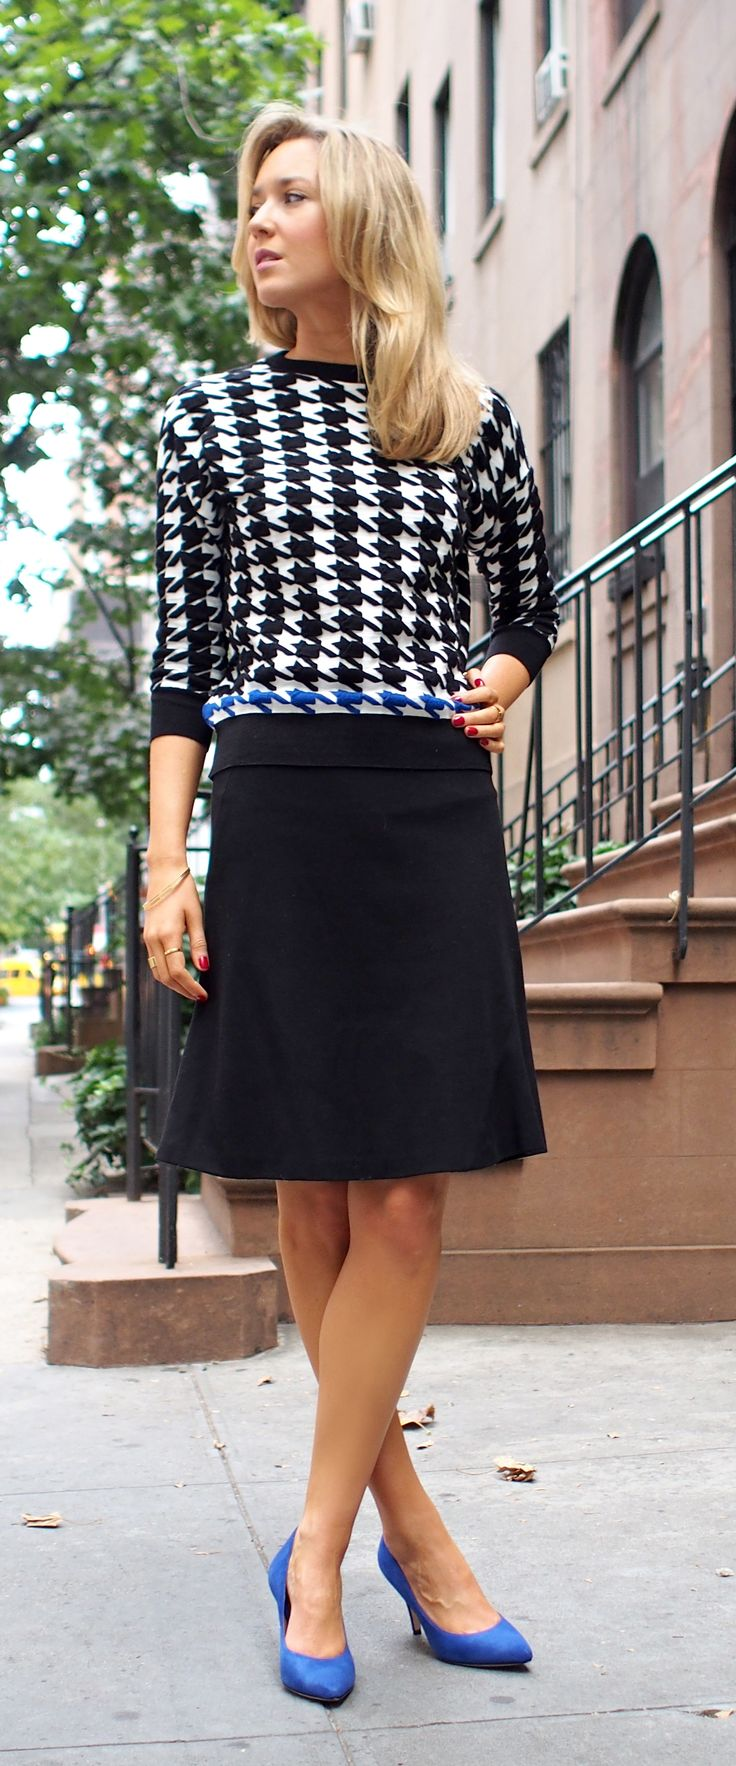 sweater, a-line knit skirt, blue suede pumps, heels, fall trend